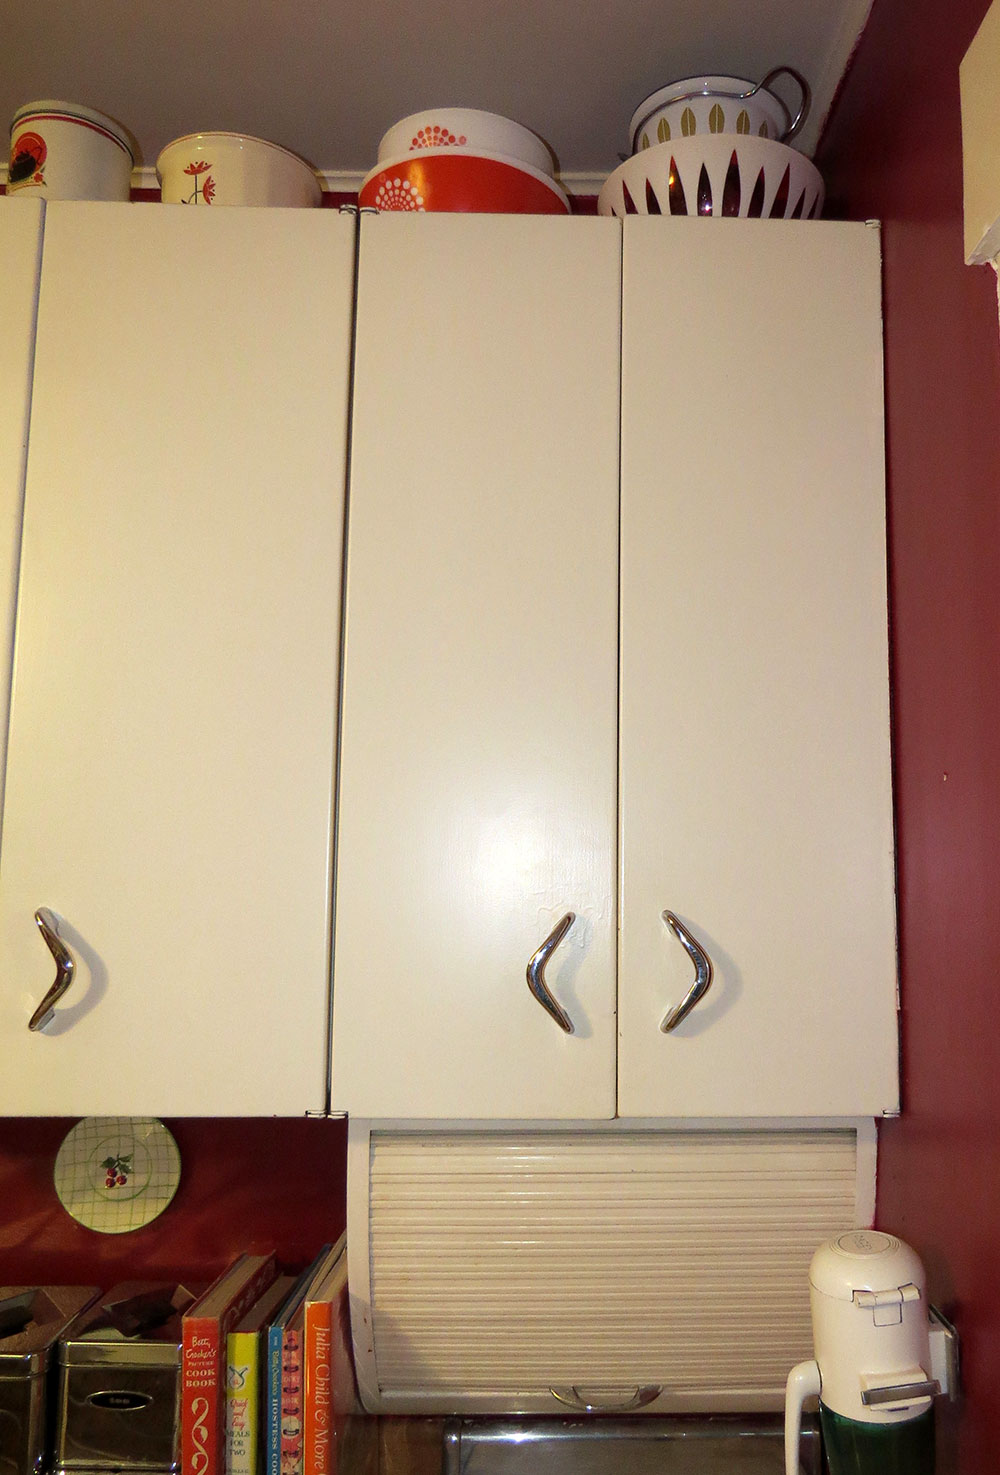 Upper cabinets with roll-top spice rack